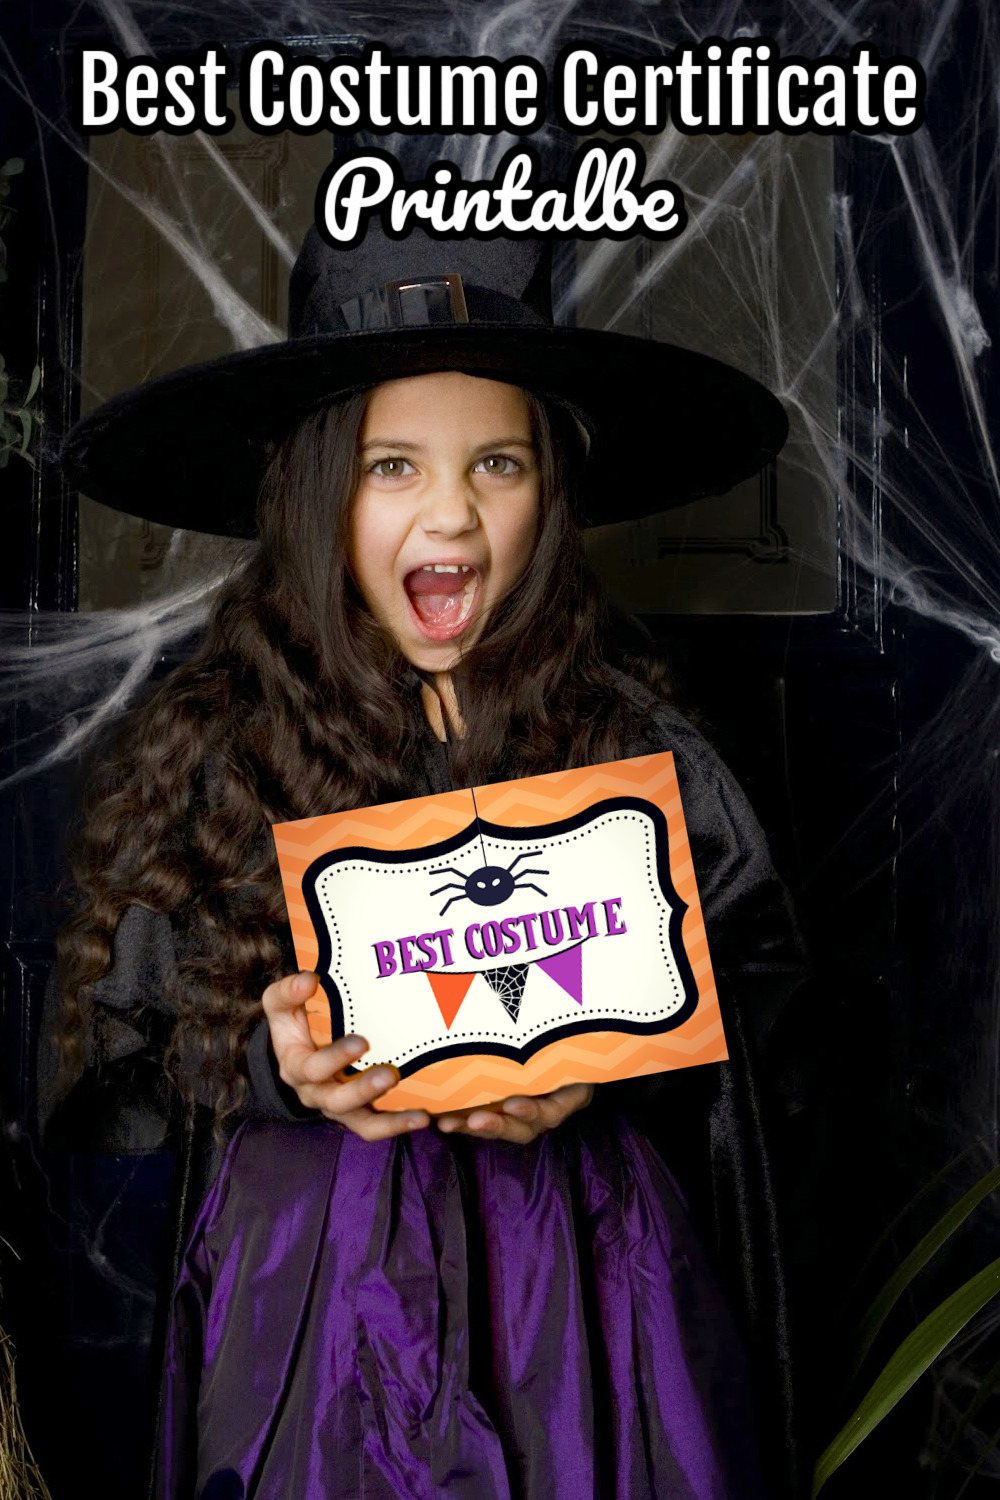 Young girl dressed as a witch holding a Best Costume certificate at a Halloween party.!